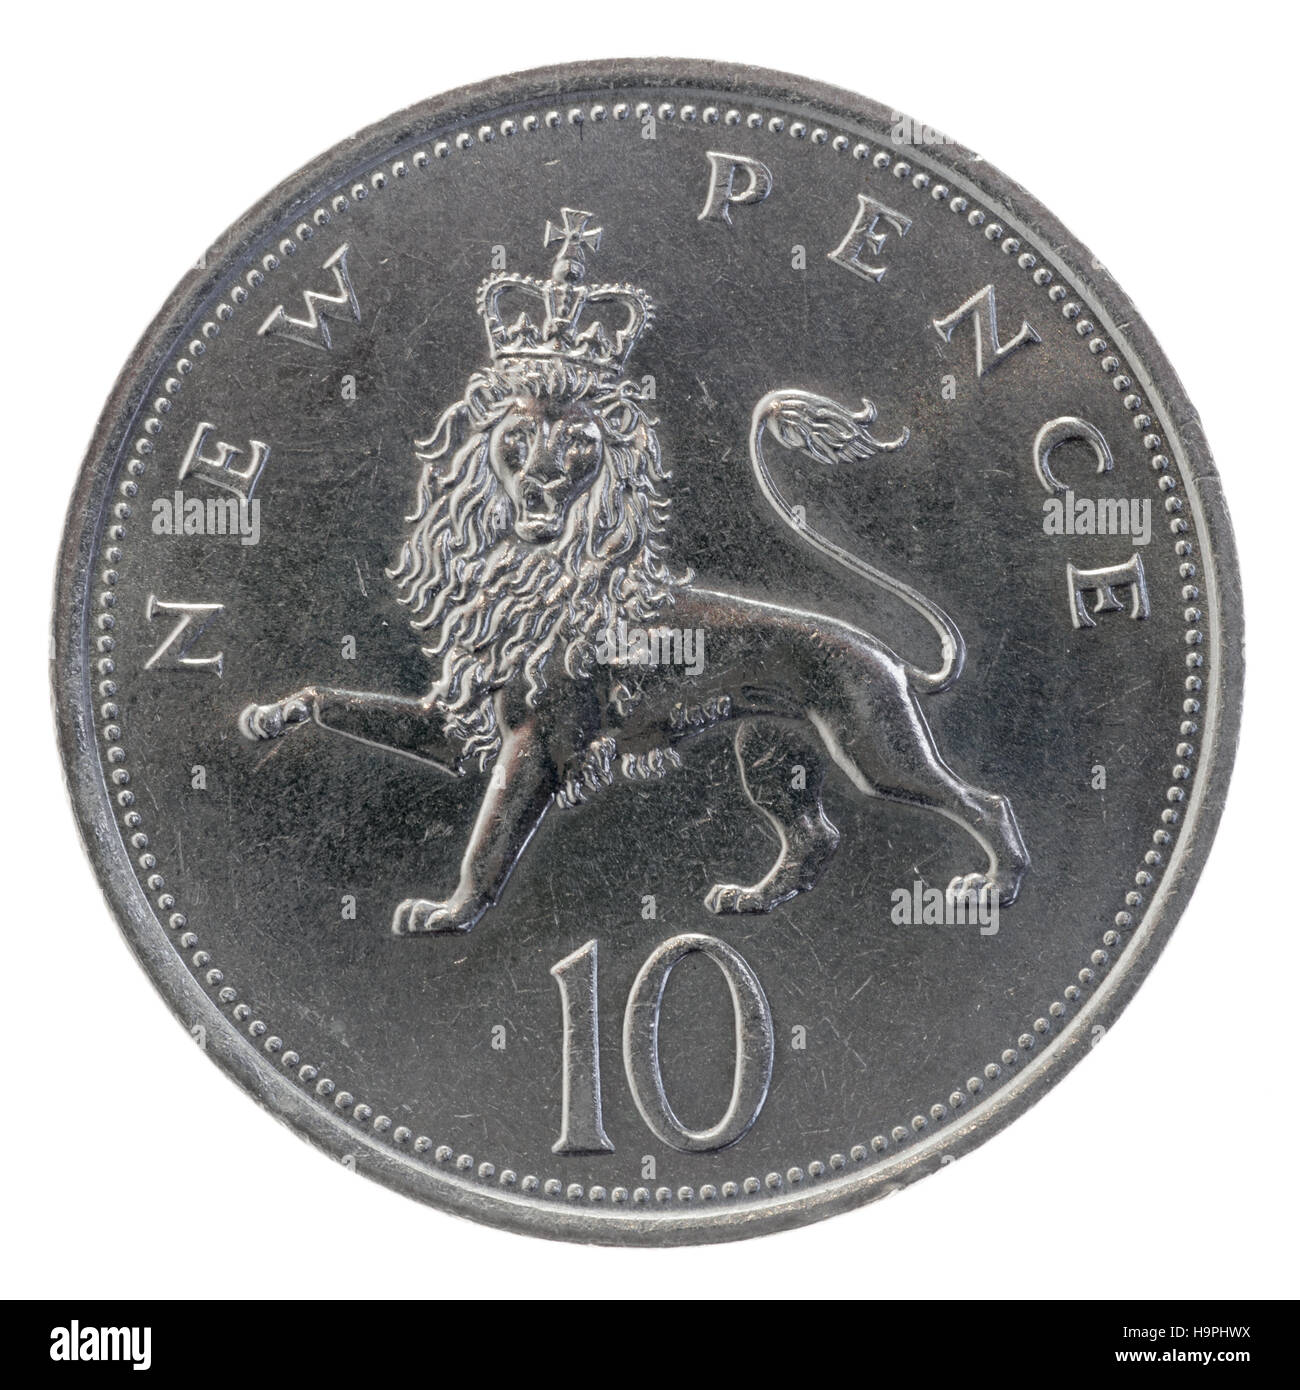 1981 British coin, older larger 10 pence piece - Stock Image